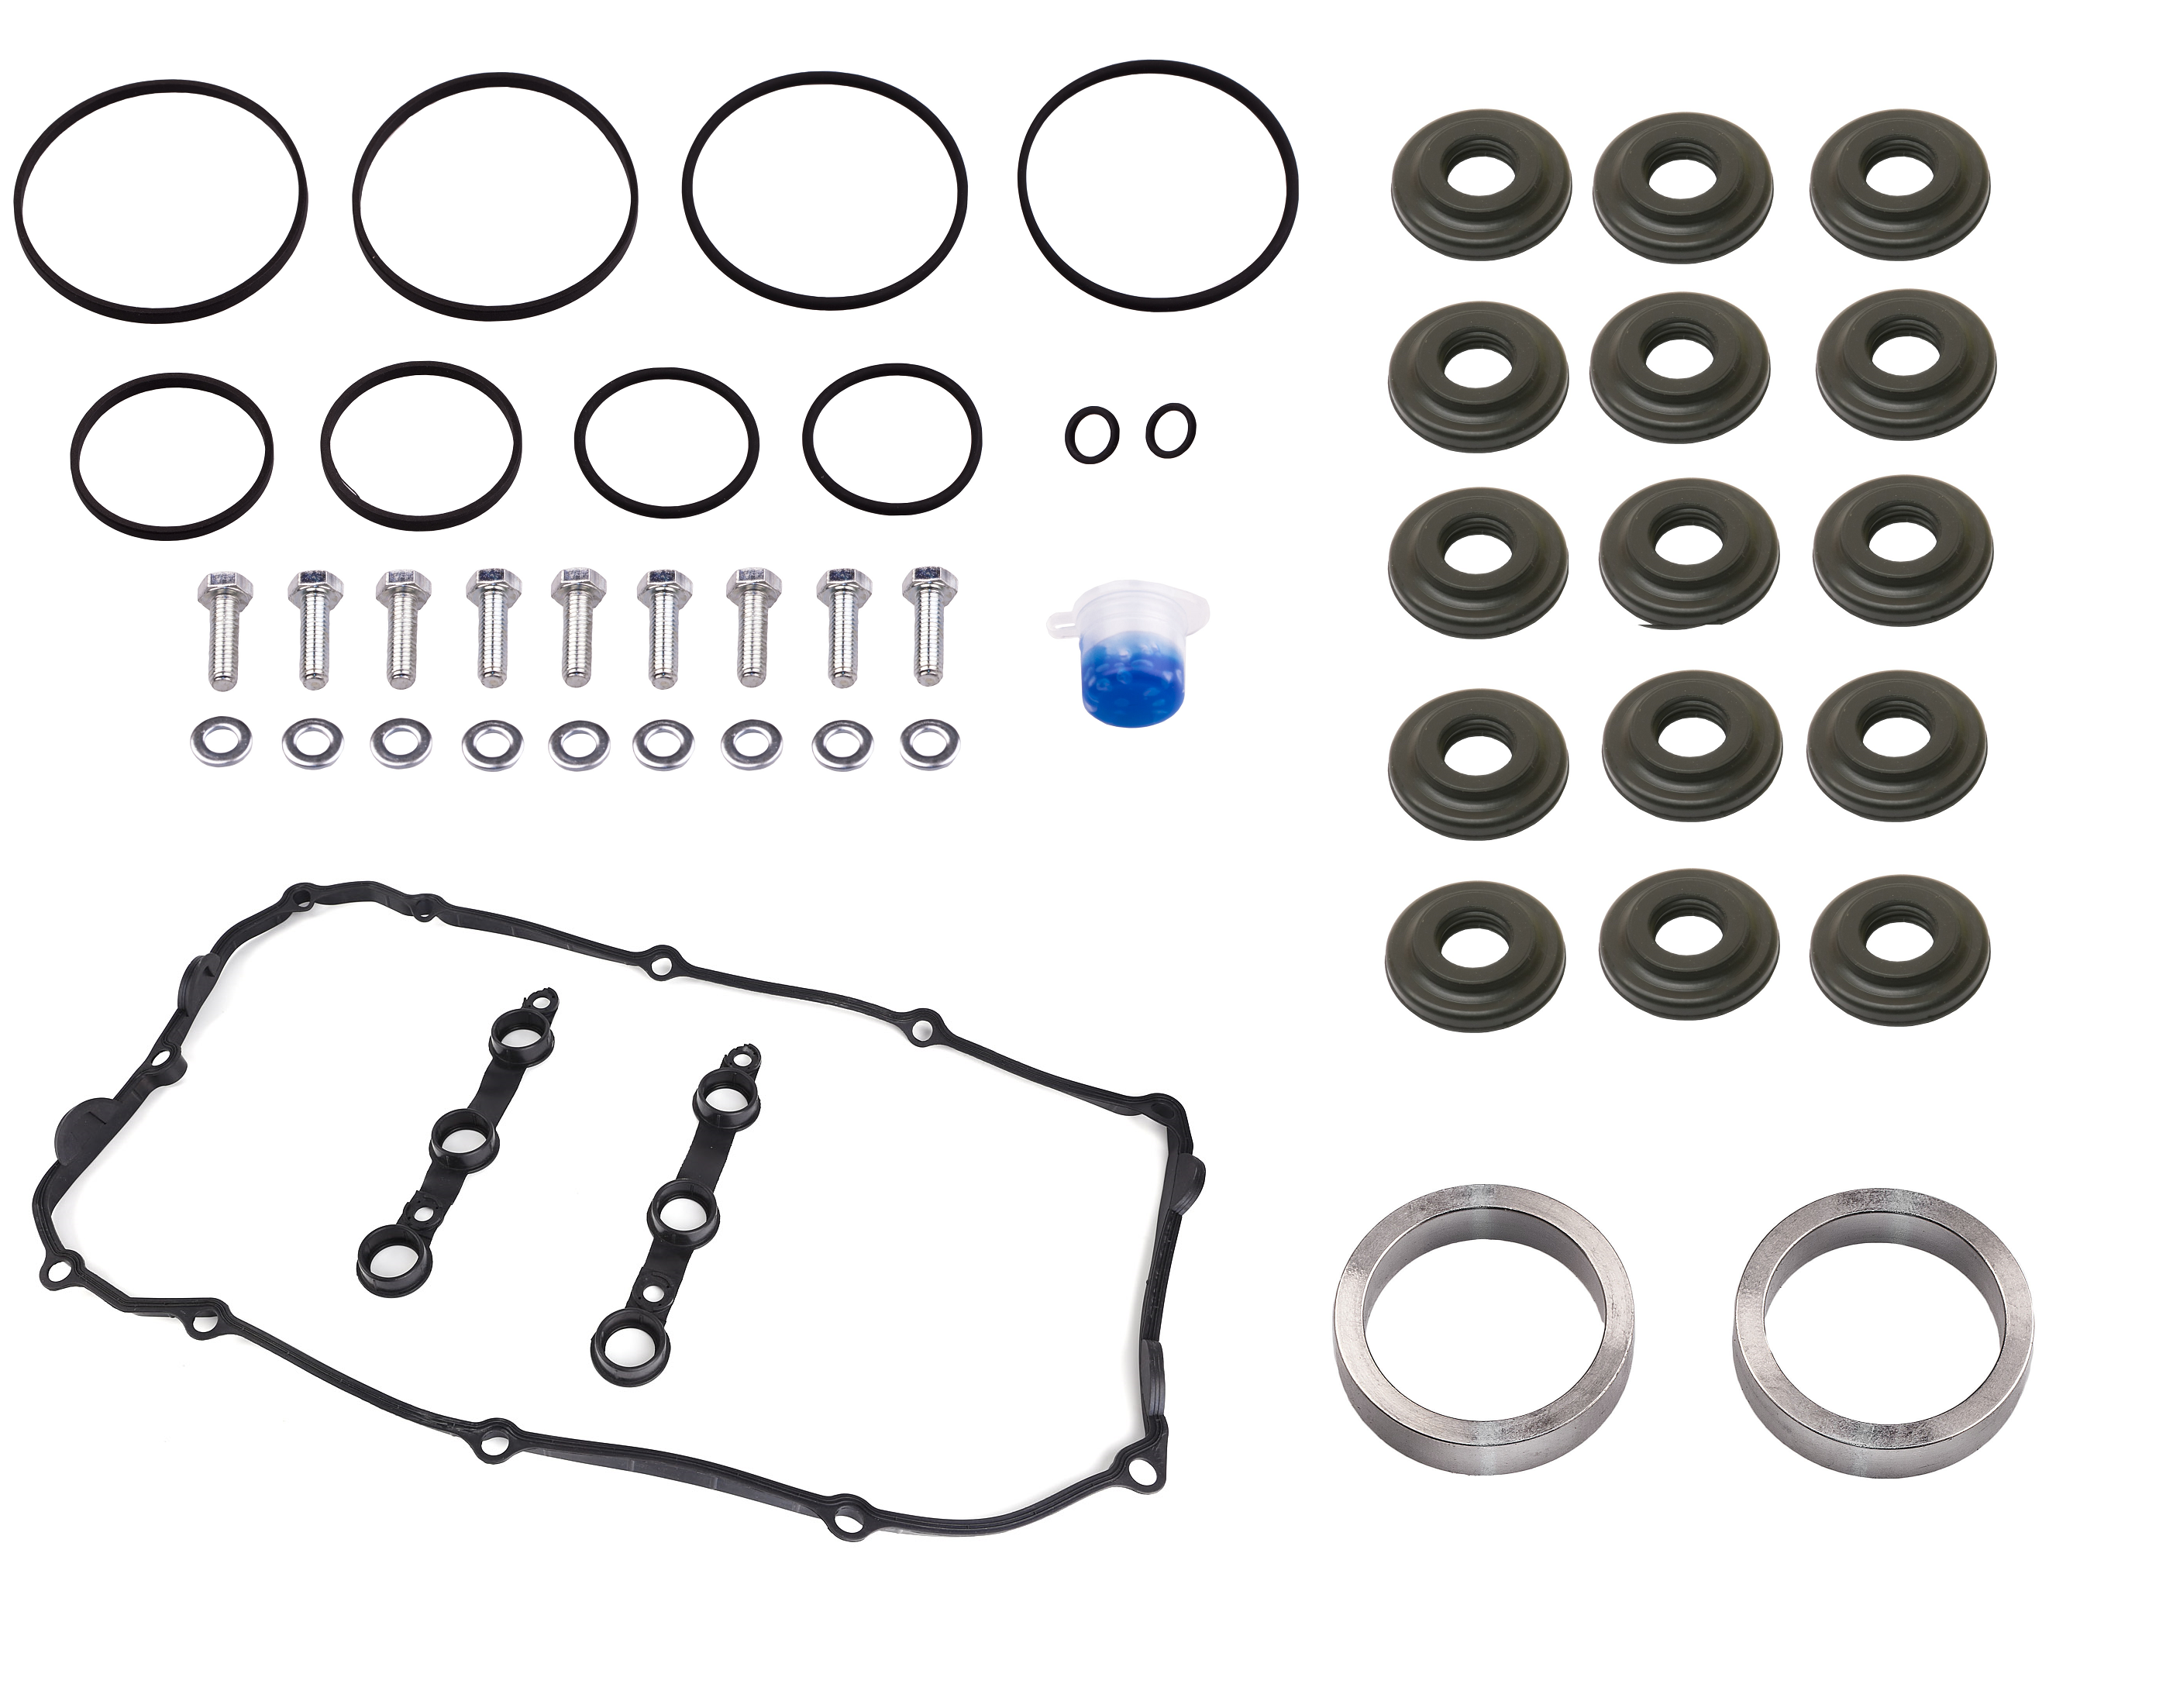 Vanos Repair Kit additionally 300zx Engine Removal further Discussion D488 ds528784 together with P 0900c1528003800a further File Single Cylinder T Head engine  Autocar Handbook  13th ed  1935. on bmw e46 intake manifold diagram